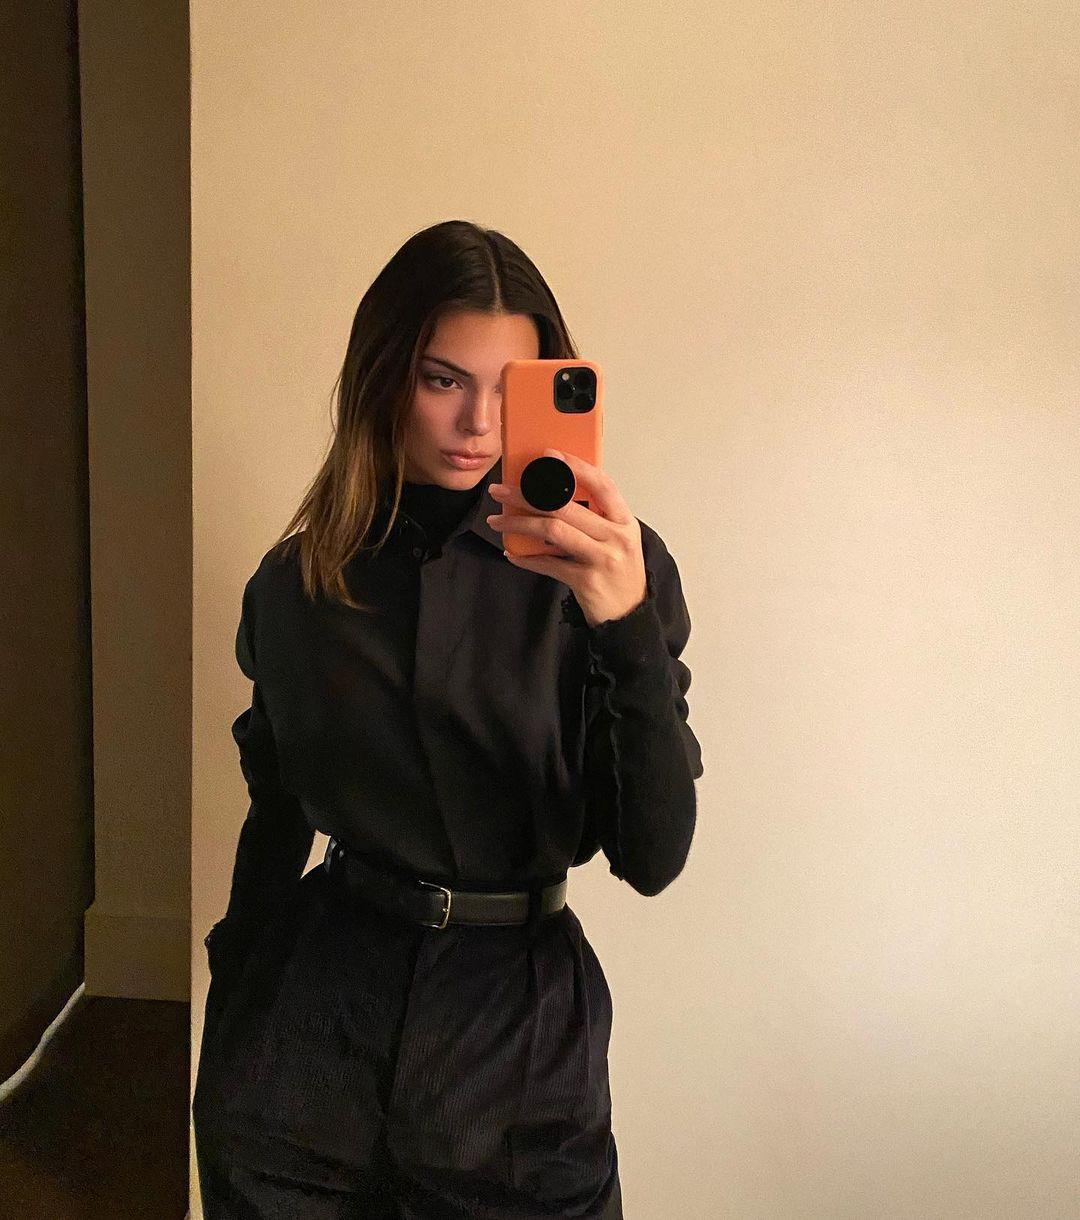 Kendall Jenner talked about Mental Health